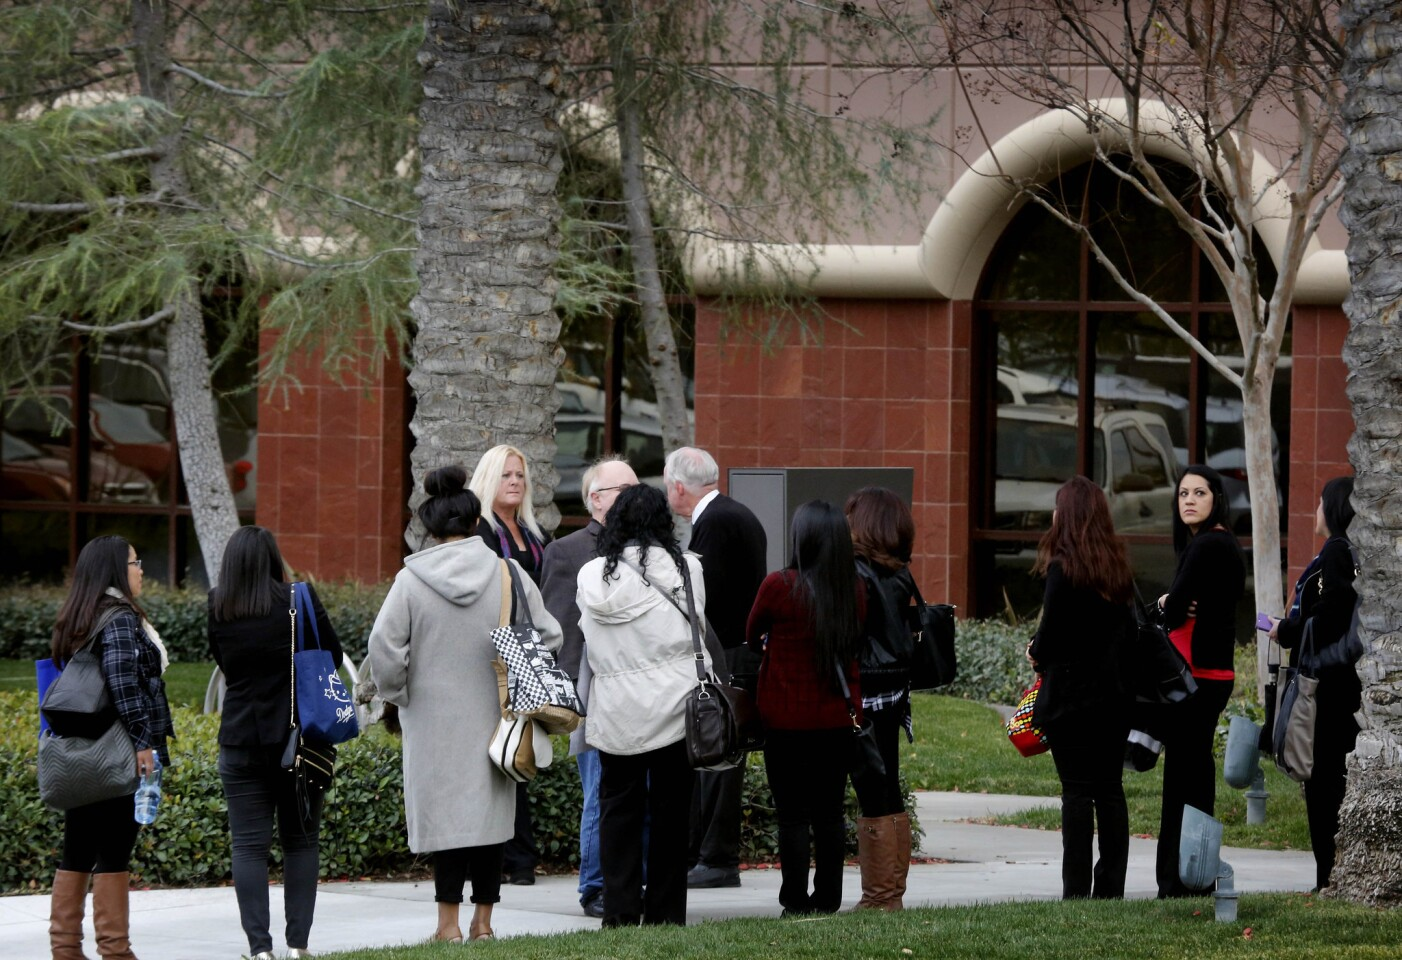 Employees wait to enter the Inland Regional Center complex in San Bernardino as it reopens for the first time since a mass shooting there last month that left 14 people dead.